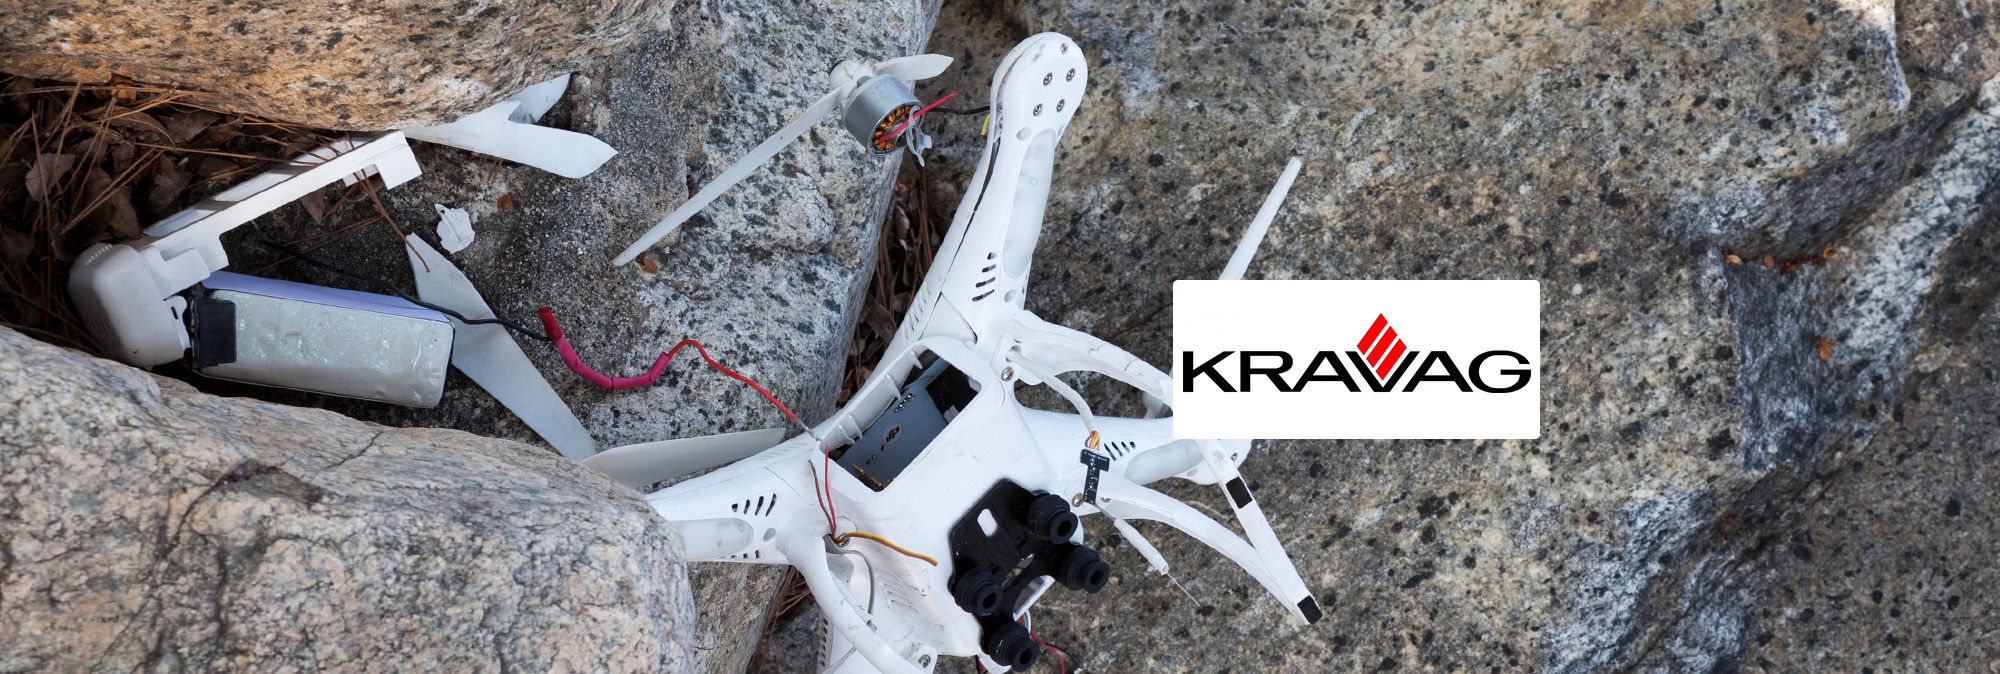 neu degenia luftfahrt kaskoversicherung degenia versicherungsdienst ag. Black Bedroom Furniture Sets. Home Design Ideas